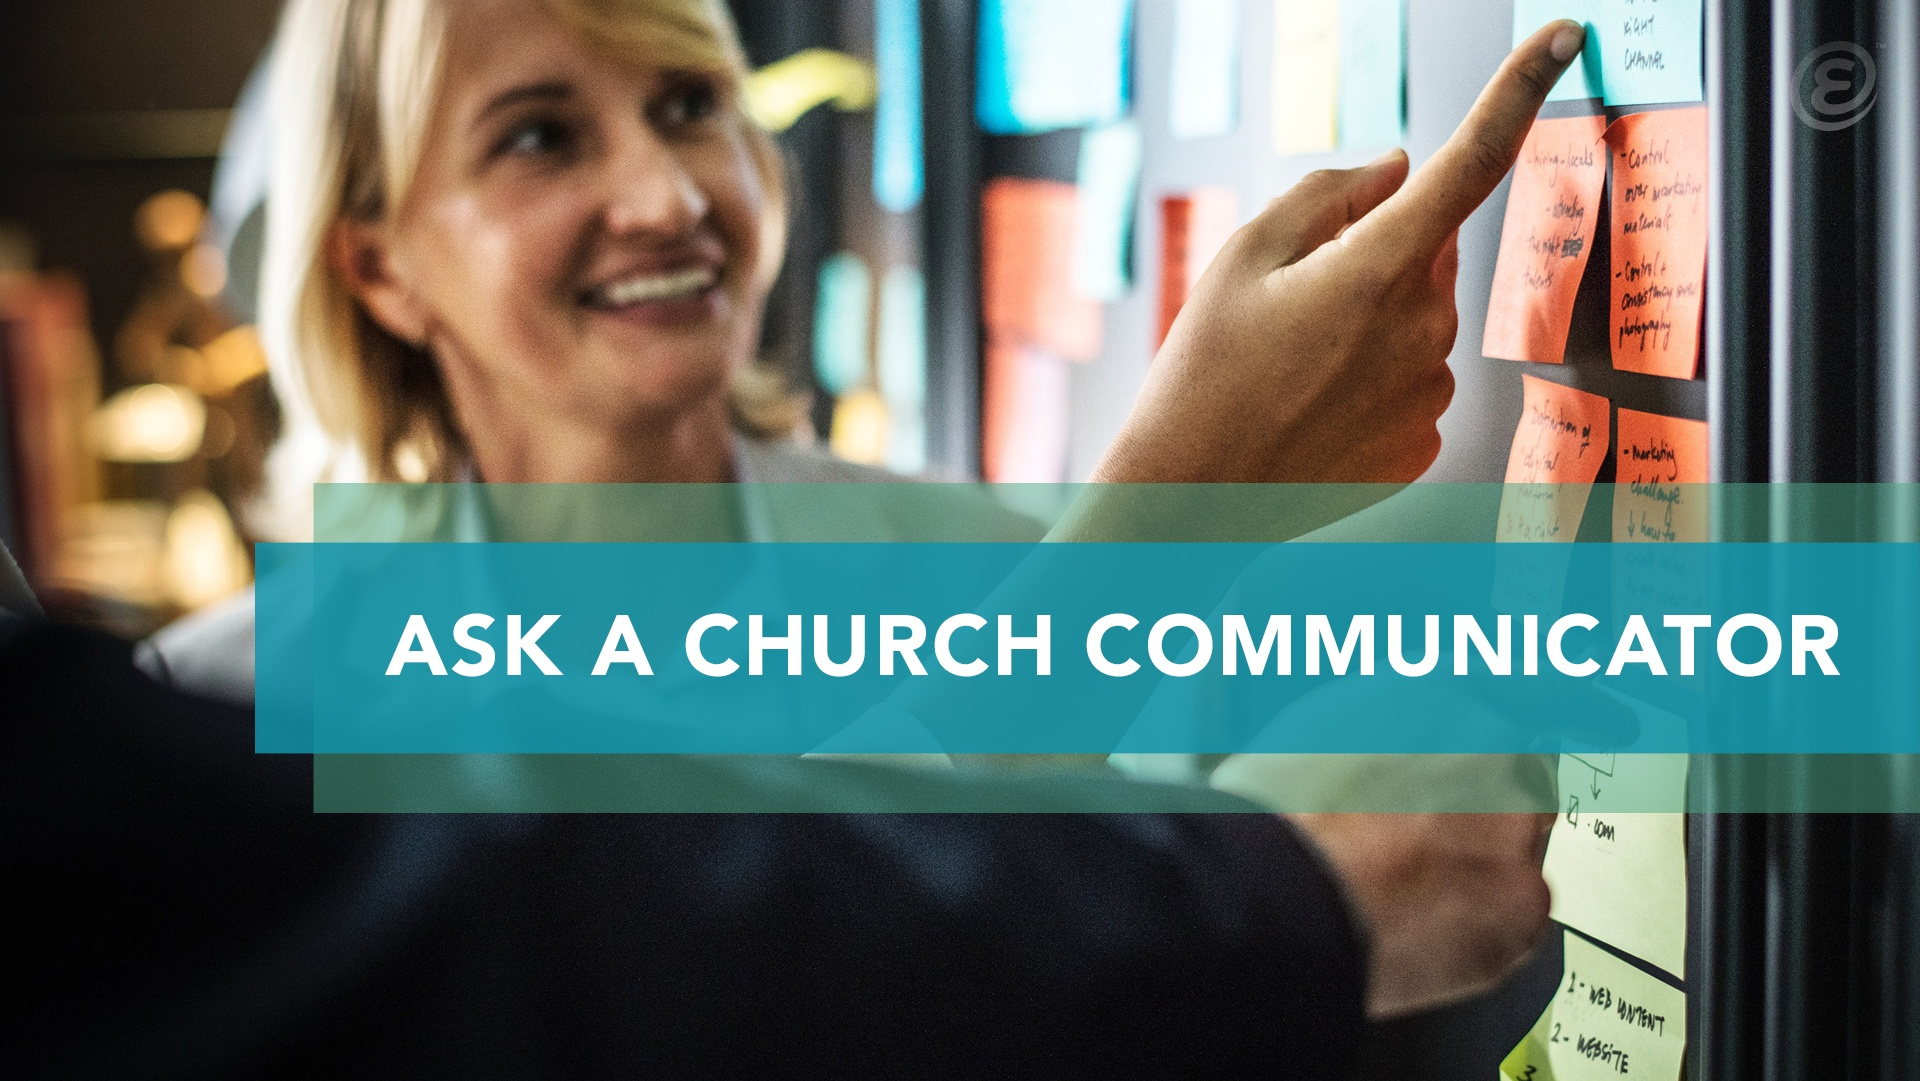 Ask-a-Church-Communicator-Ekklesia-360-Blog-Feature